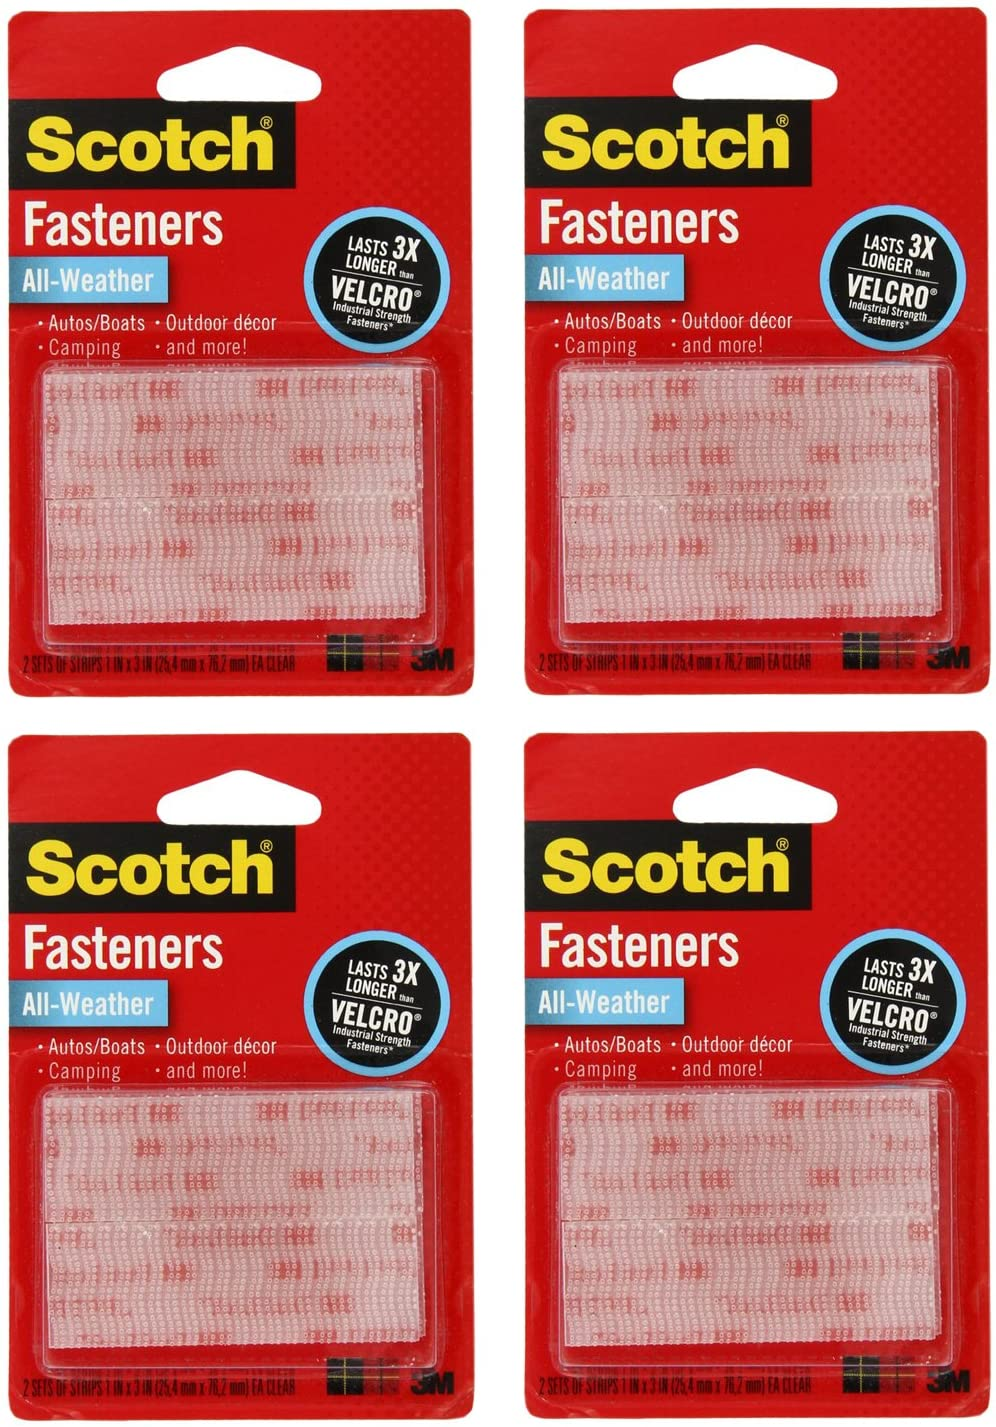 3M Scotch All-Weather EZPass iPass Fastlane Toll Fasteners, 8 Sets of 1 Inch x 3 Inches Strips, Clear (RFD7090) : Office Products